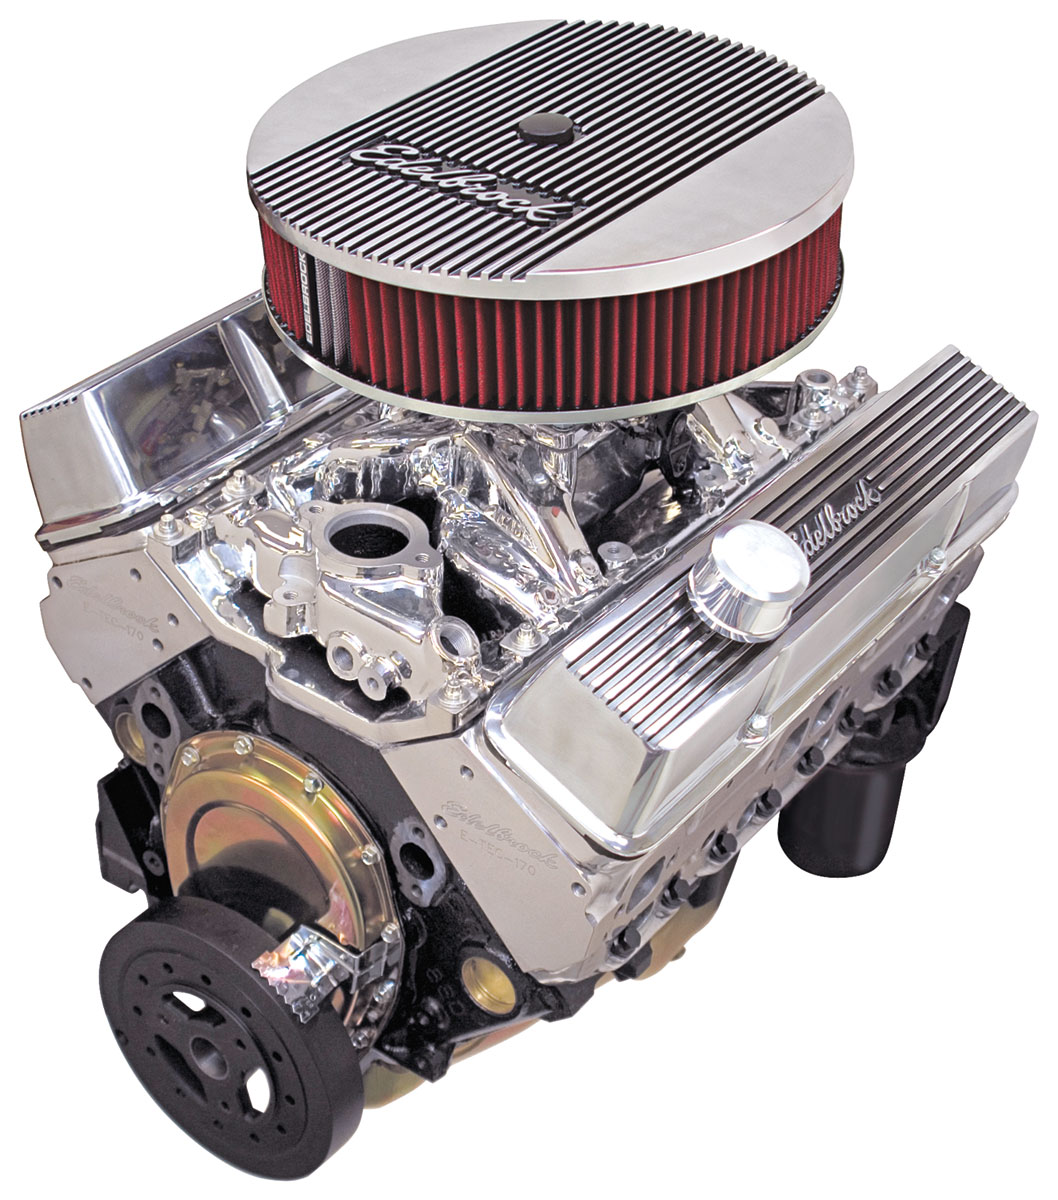 Crate Engine, RPM E-TEC, Edelbrock, Chevy 350, Long Water Pump, Polished